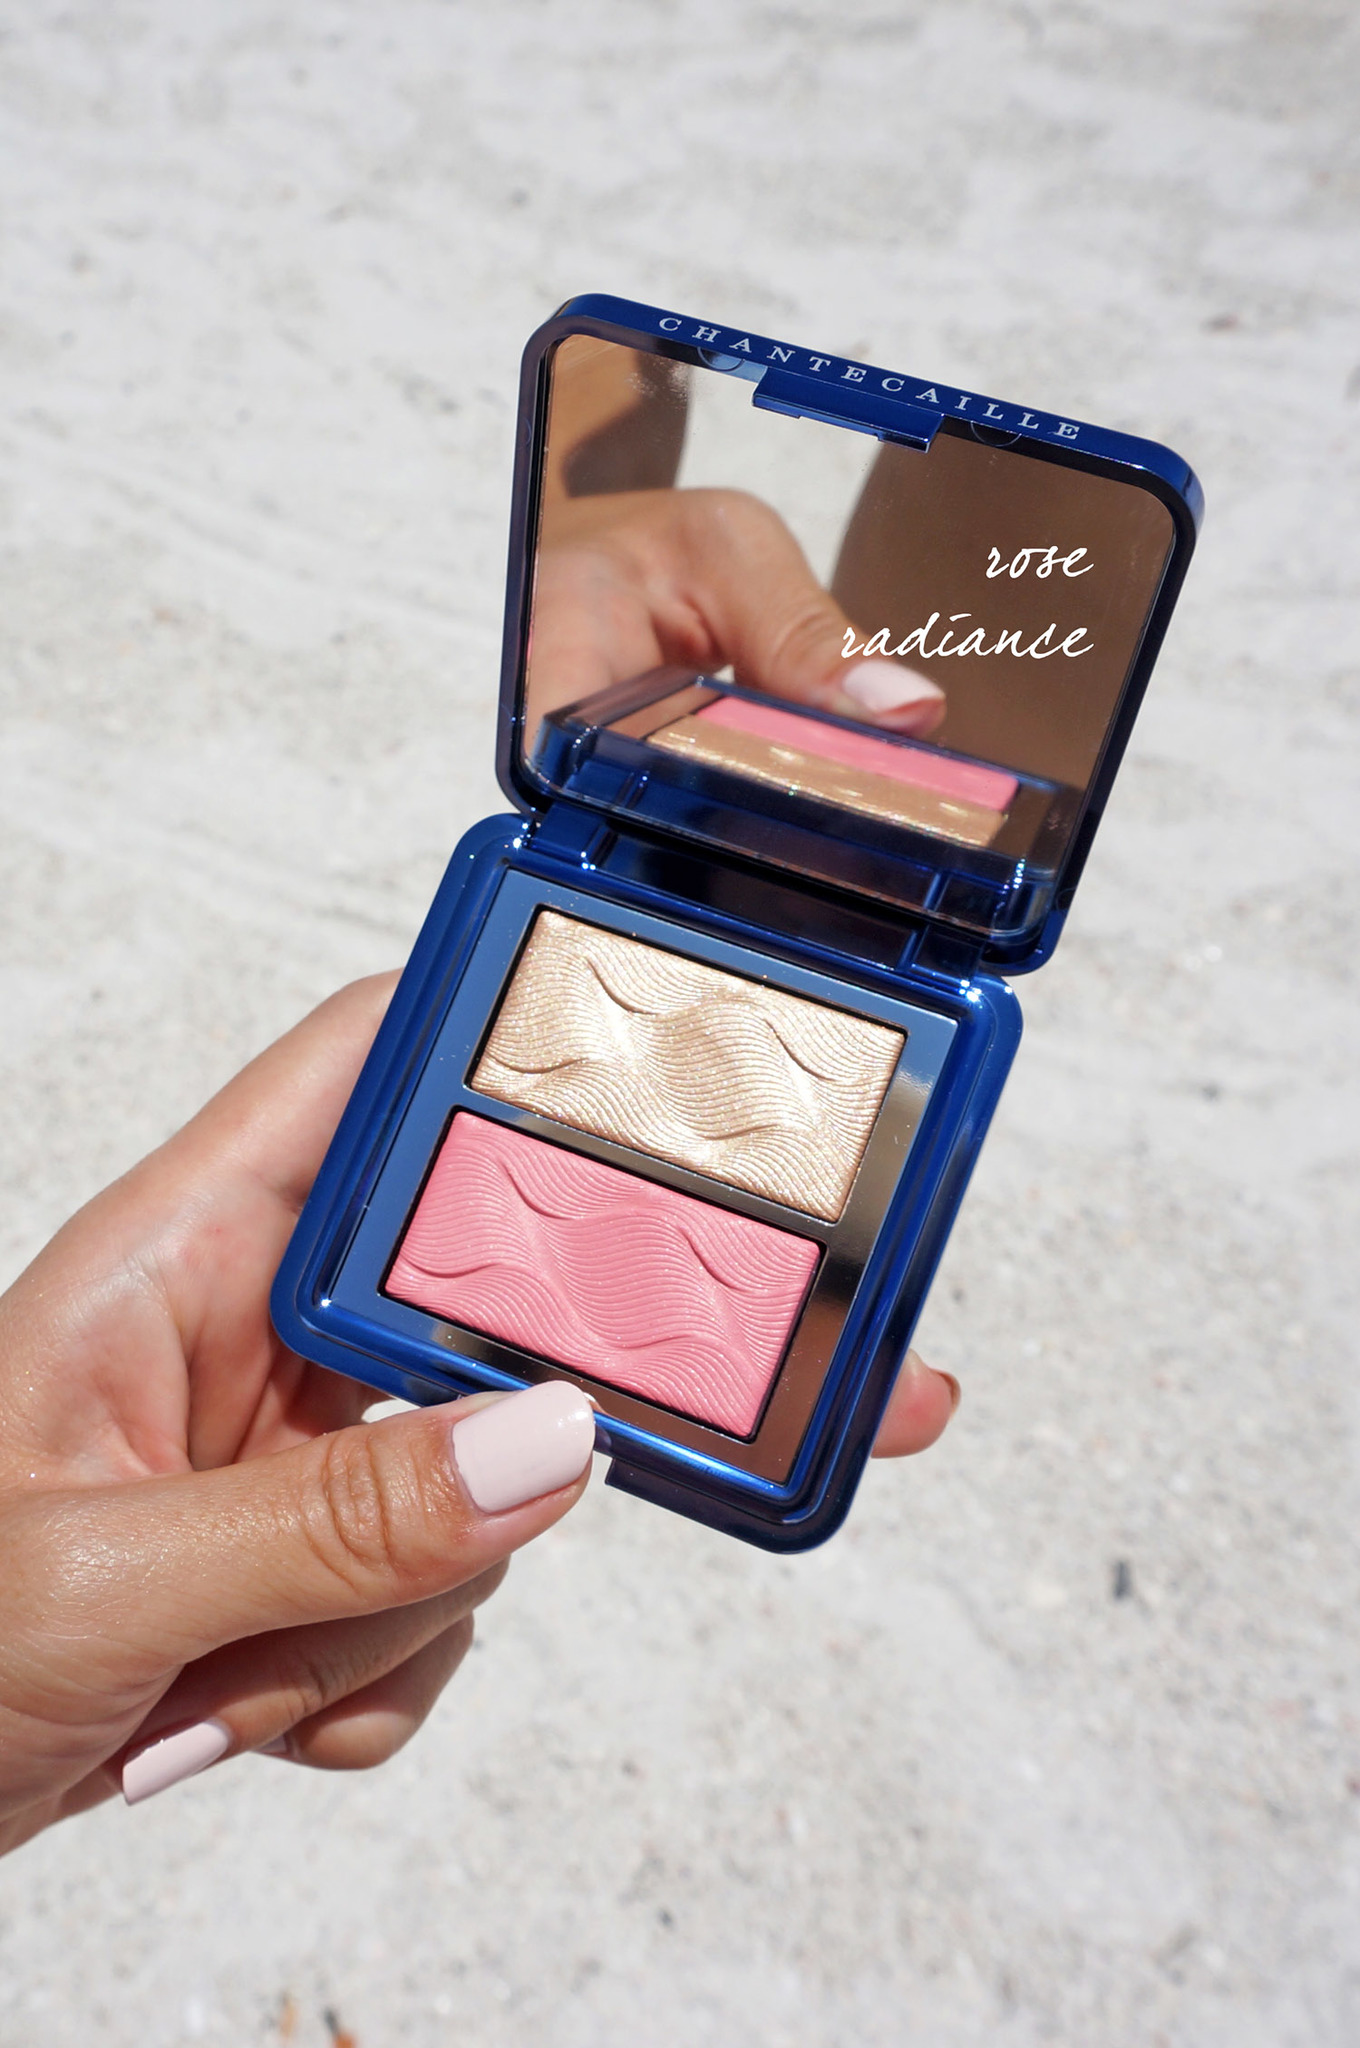 CHANTECAILLE Vibrant Oceans Radiance Chic Cheek And Highlighter Duo